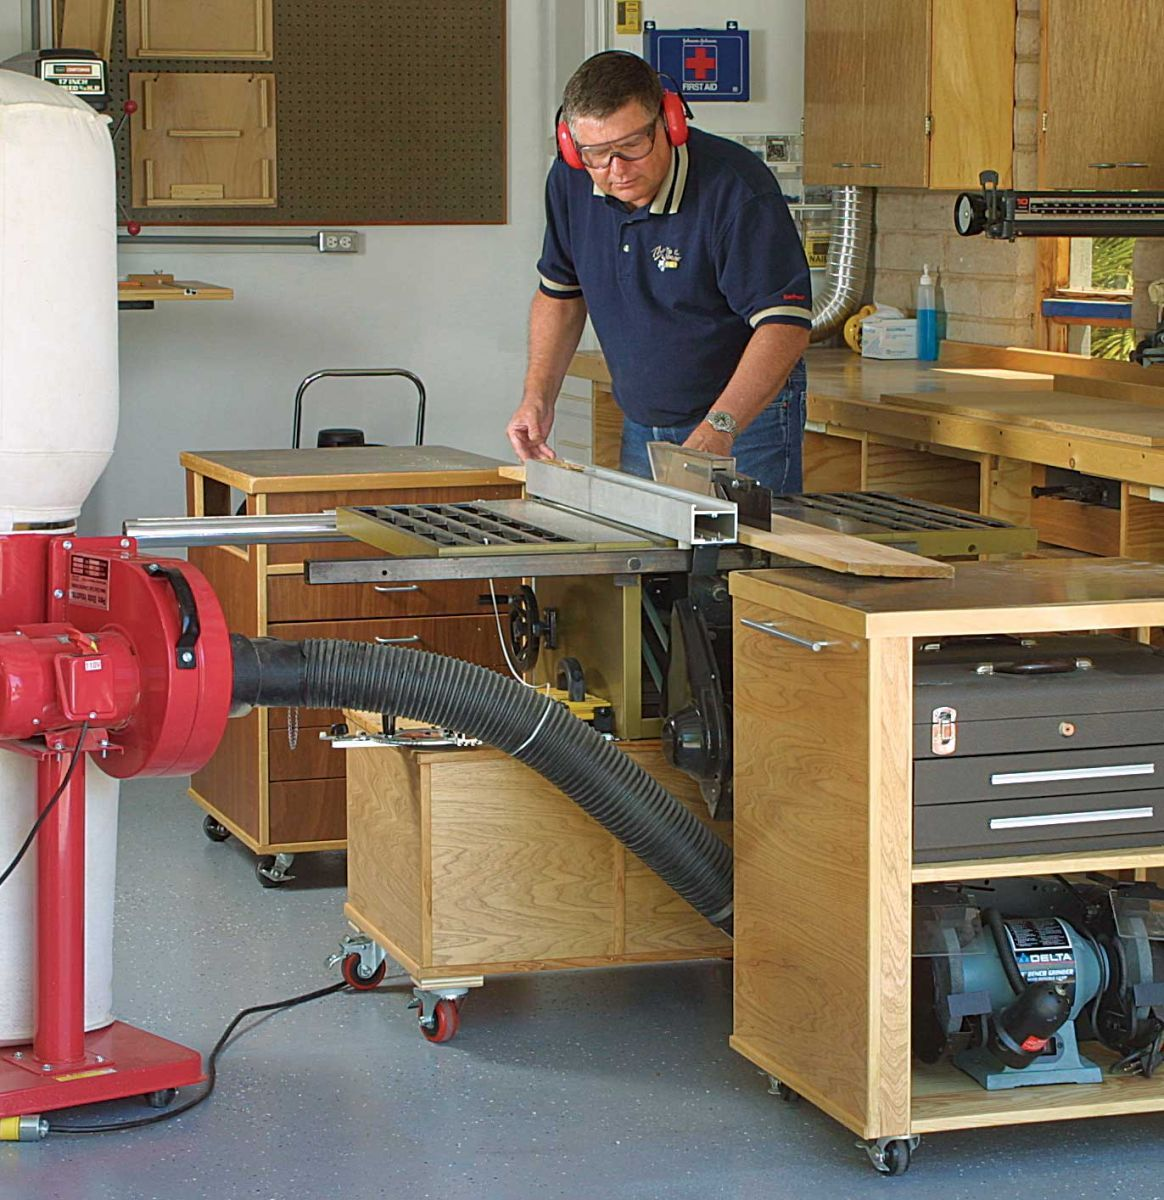 how to use a wood planer machine